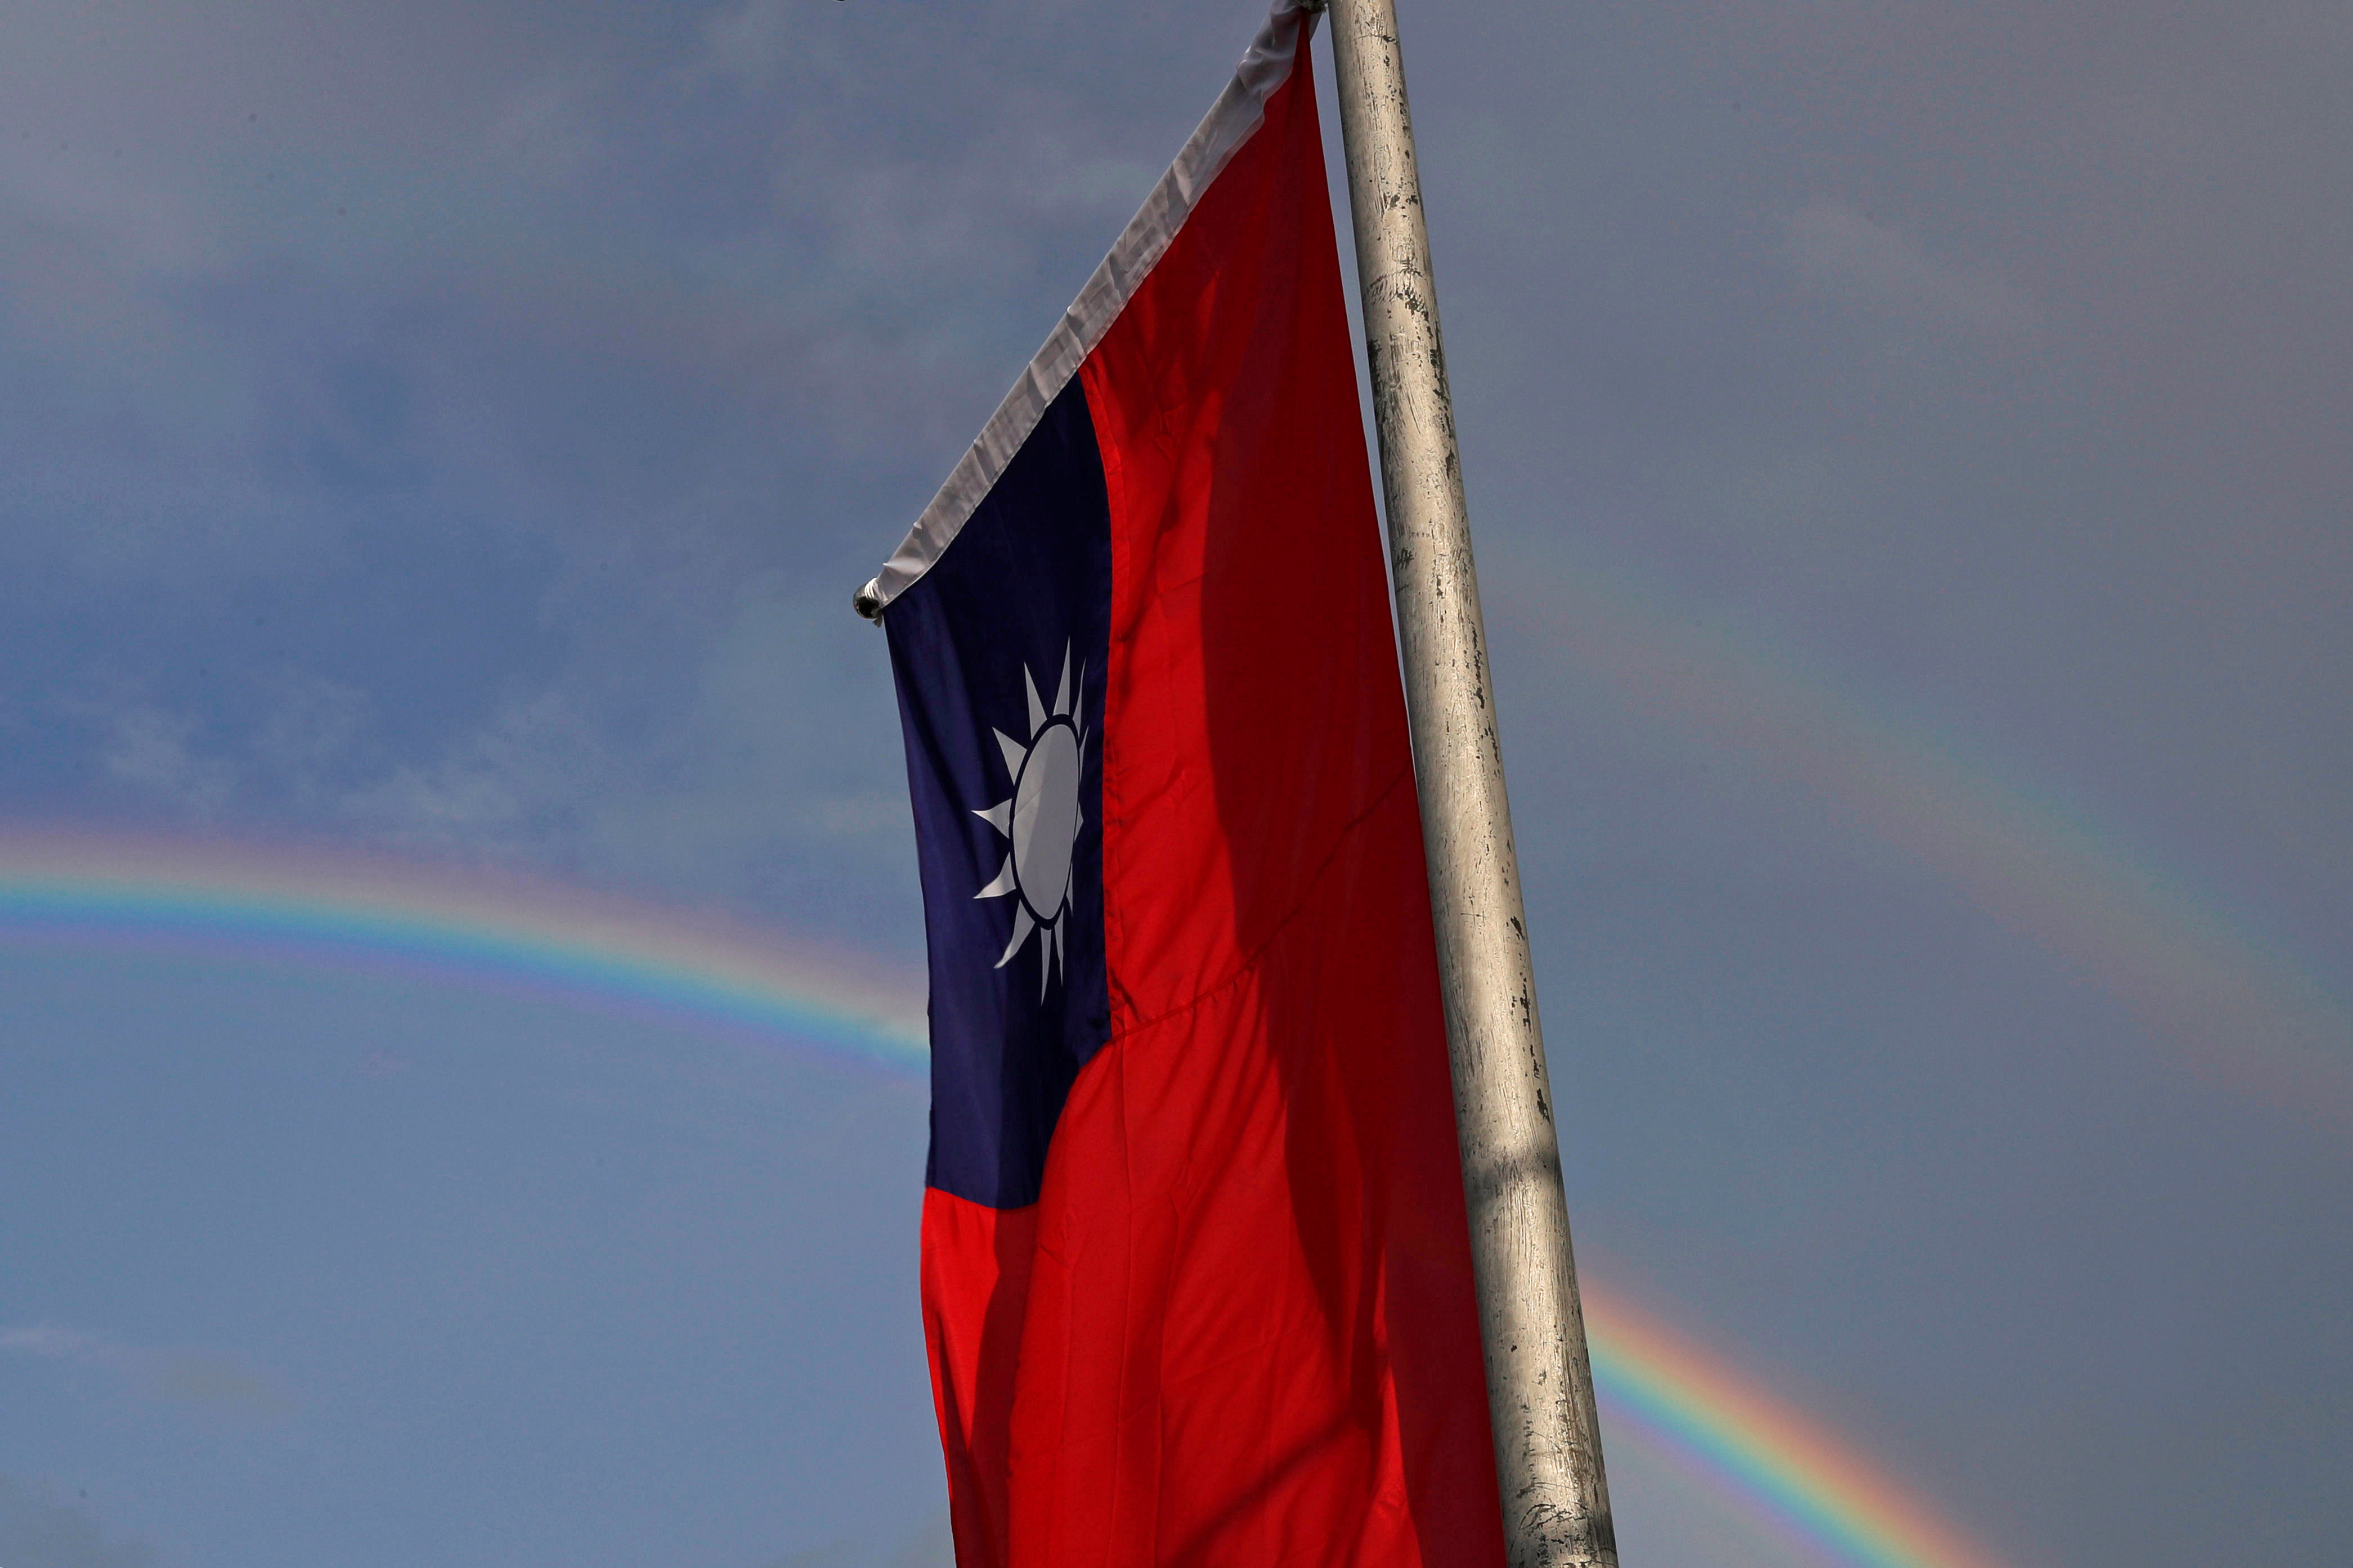 A double rainbow is seen behind Taiwanese flag during the National Day celebrations in Taipei, Taiwan, October 10, 2017. REUTERS/Tyrone Siu